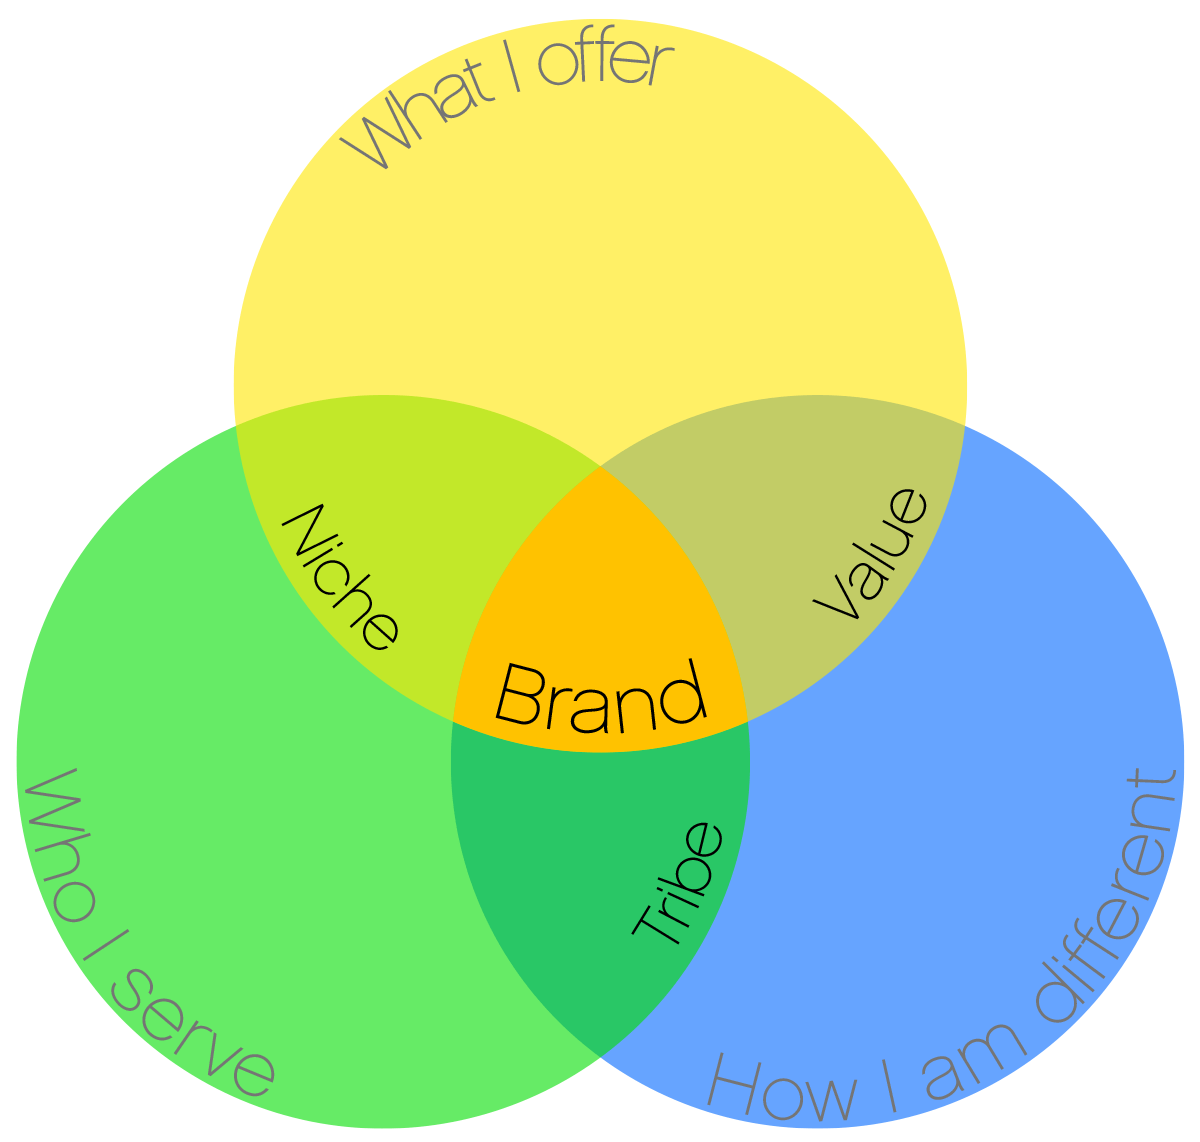 Venn diagram for branding showing how the different components overlap and interact to form the brand